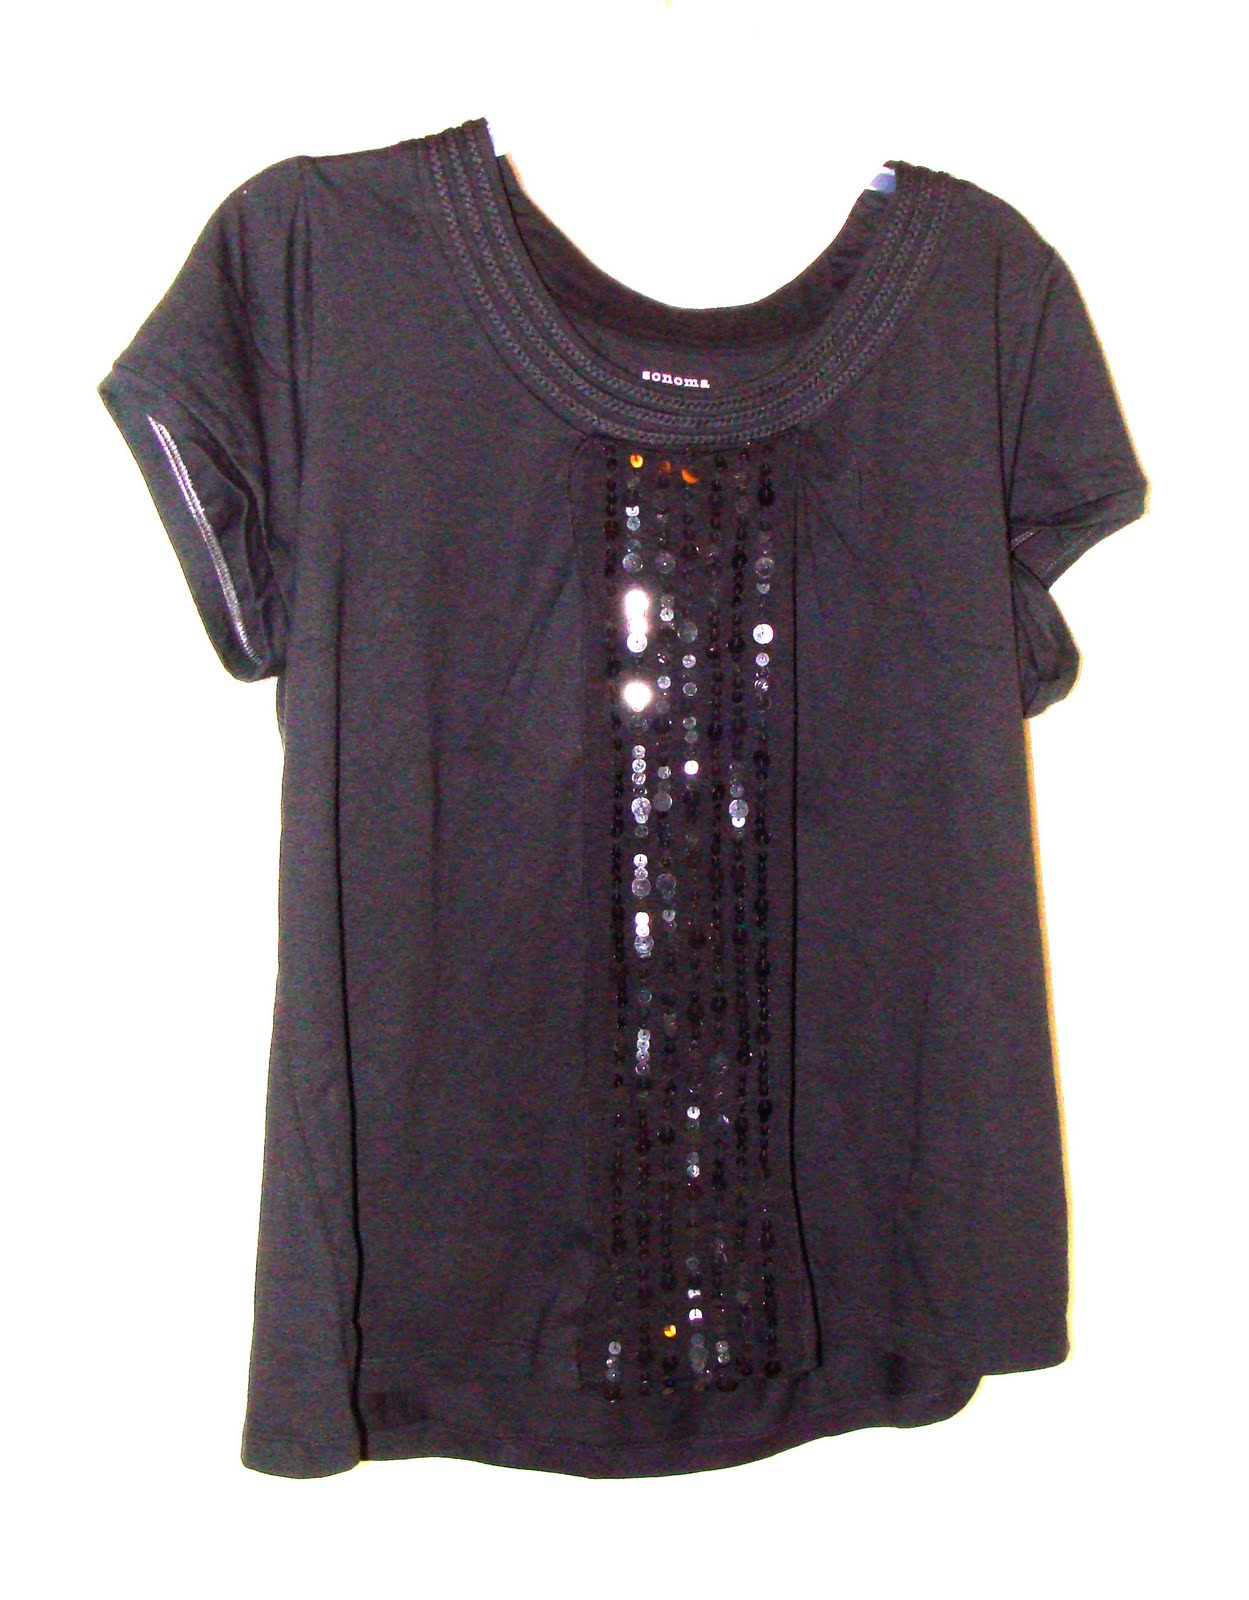 Black t shirts kohls - Sewing With Sequins Is On My Mind Now If Only Kohl S Had A Bunch Of Clearance Scarves Left